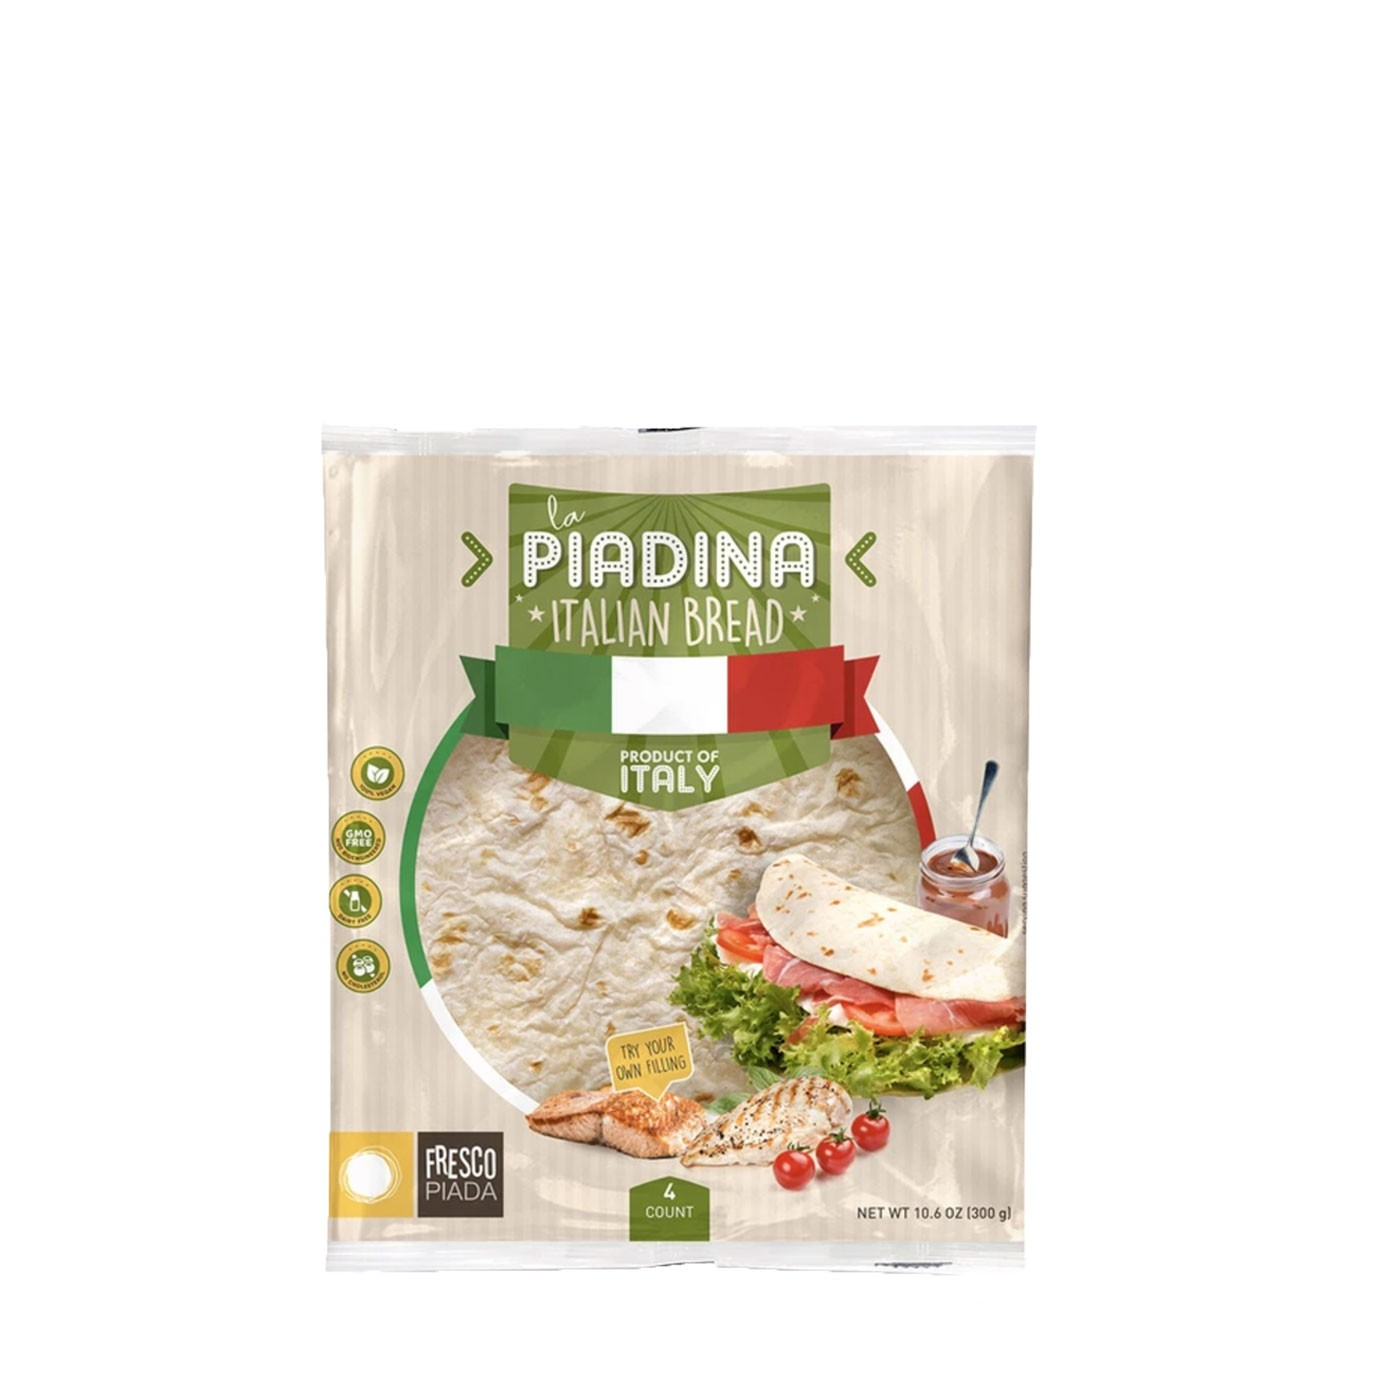 Piadina - 4 Count 10.6 oz